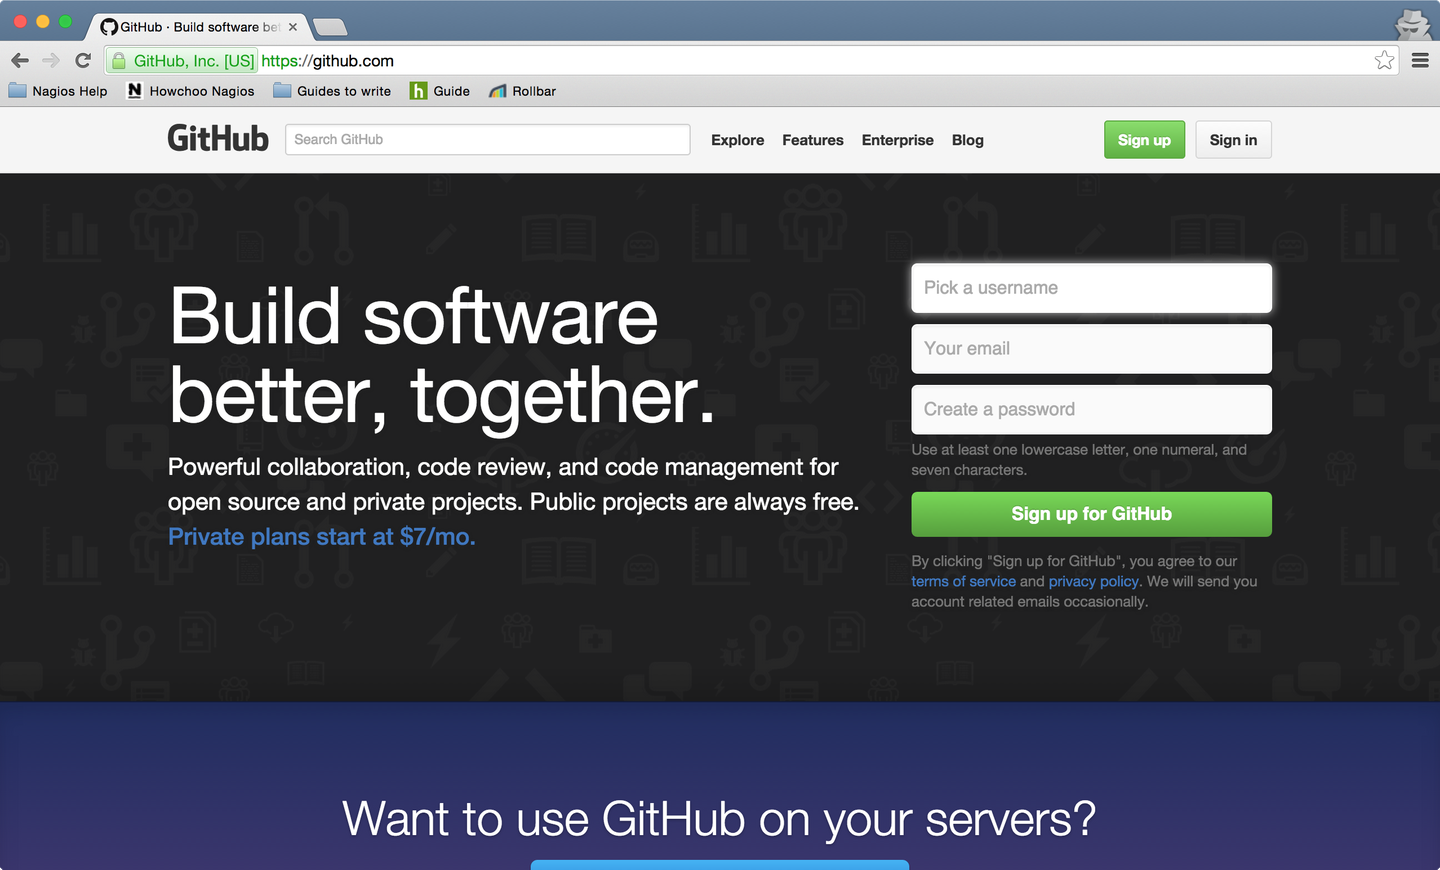 Sign up for a GitHub account